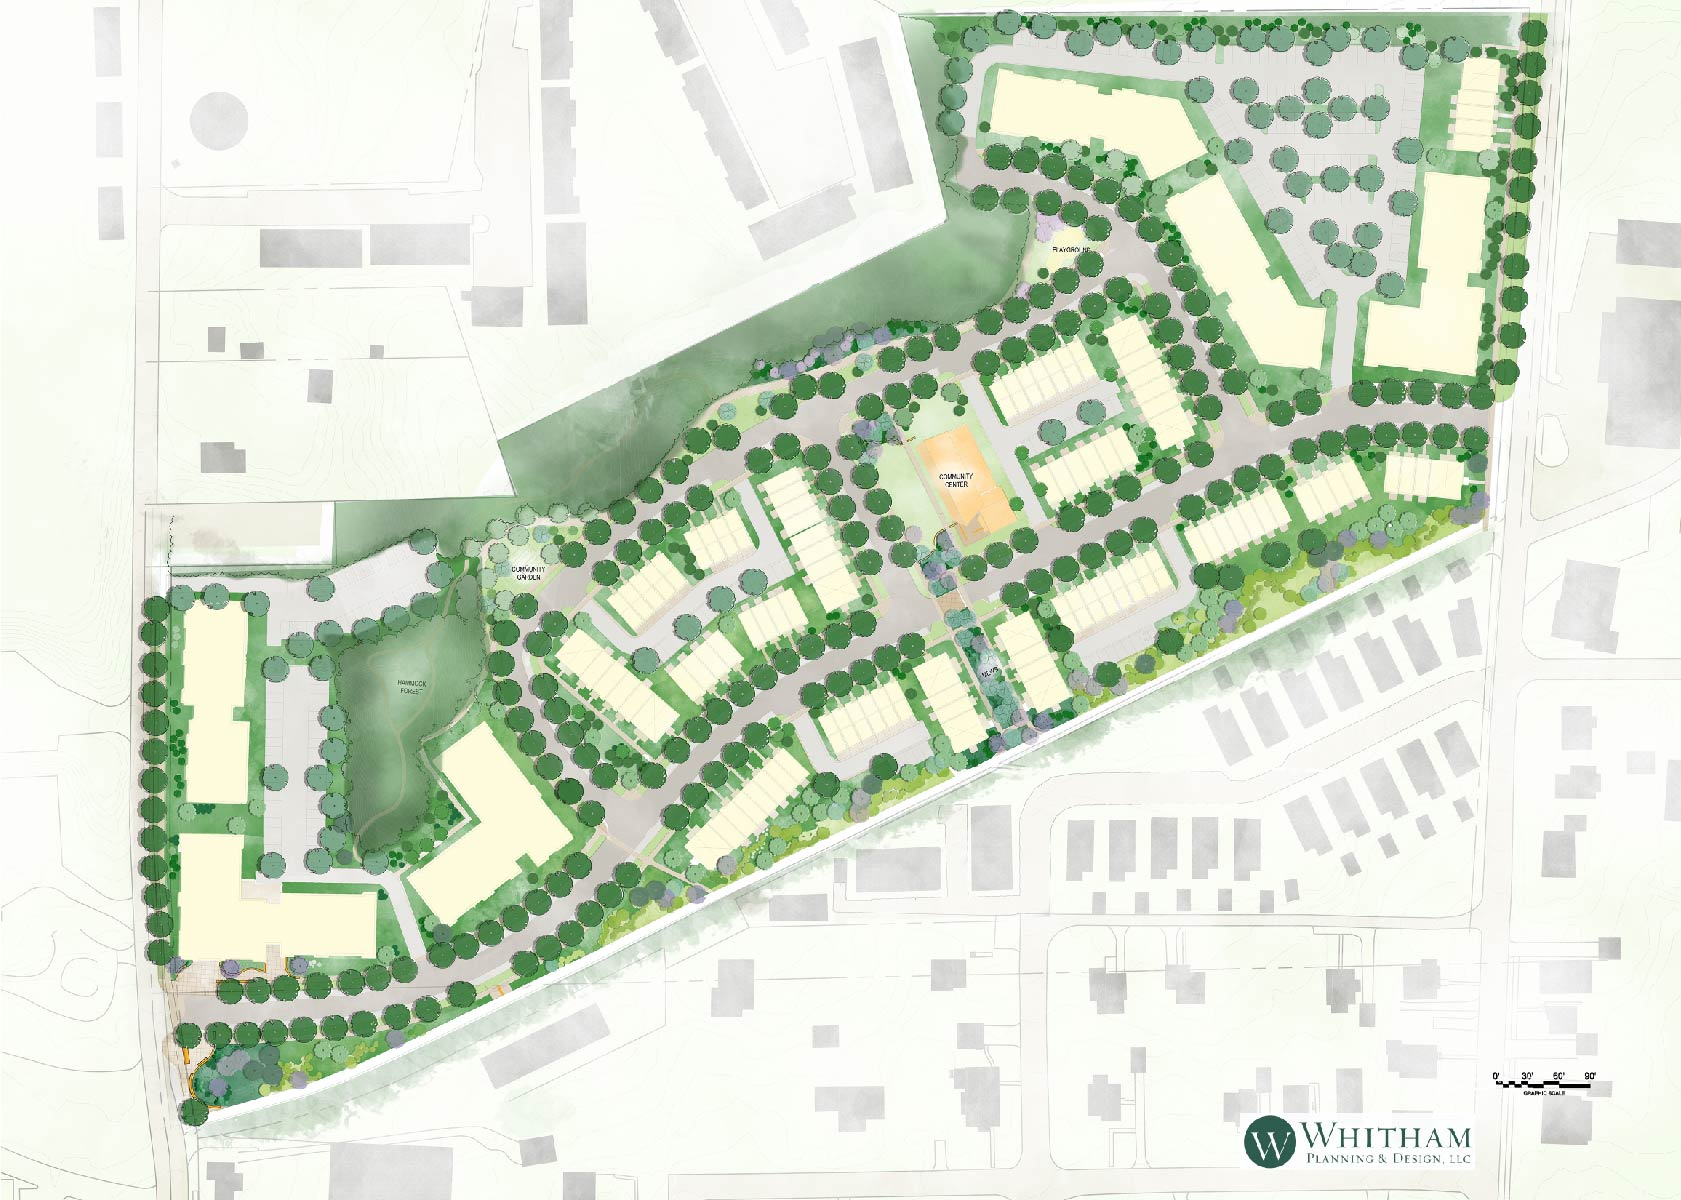 Maplewood Redevelopment  | Entitlement Coordination • Project Approvals • Project Coordination • Public Outreach • Zoning• Environmental Impact Statement • Site Planning • Landscape Design